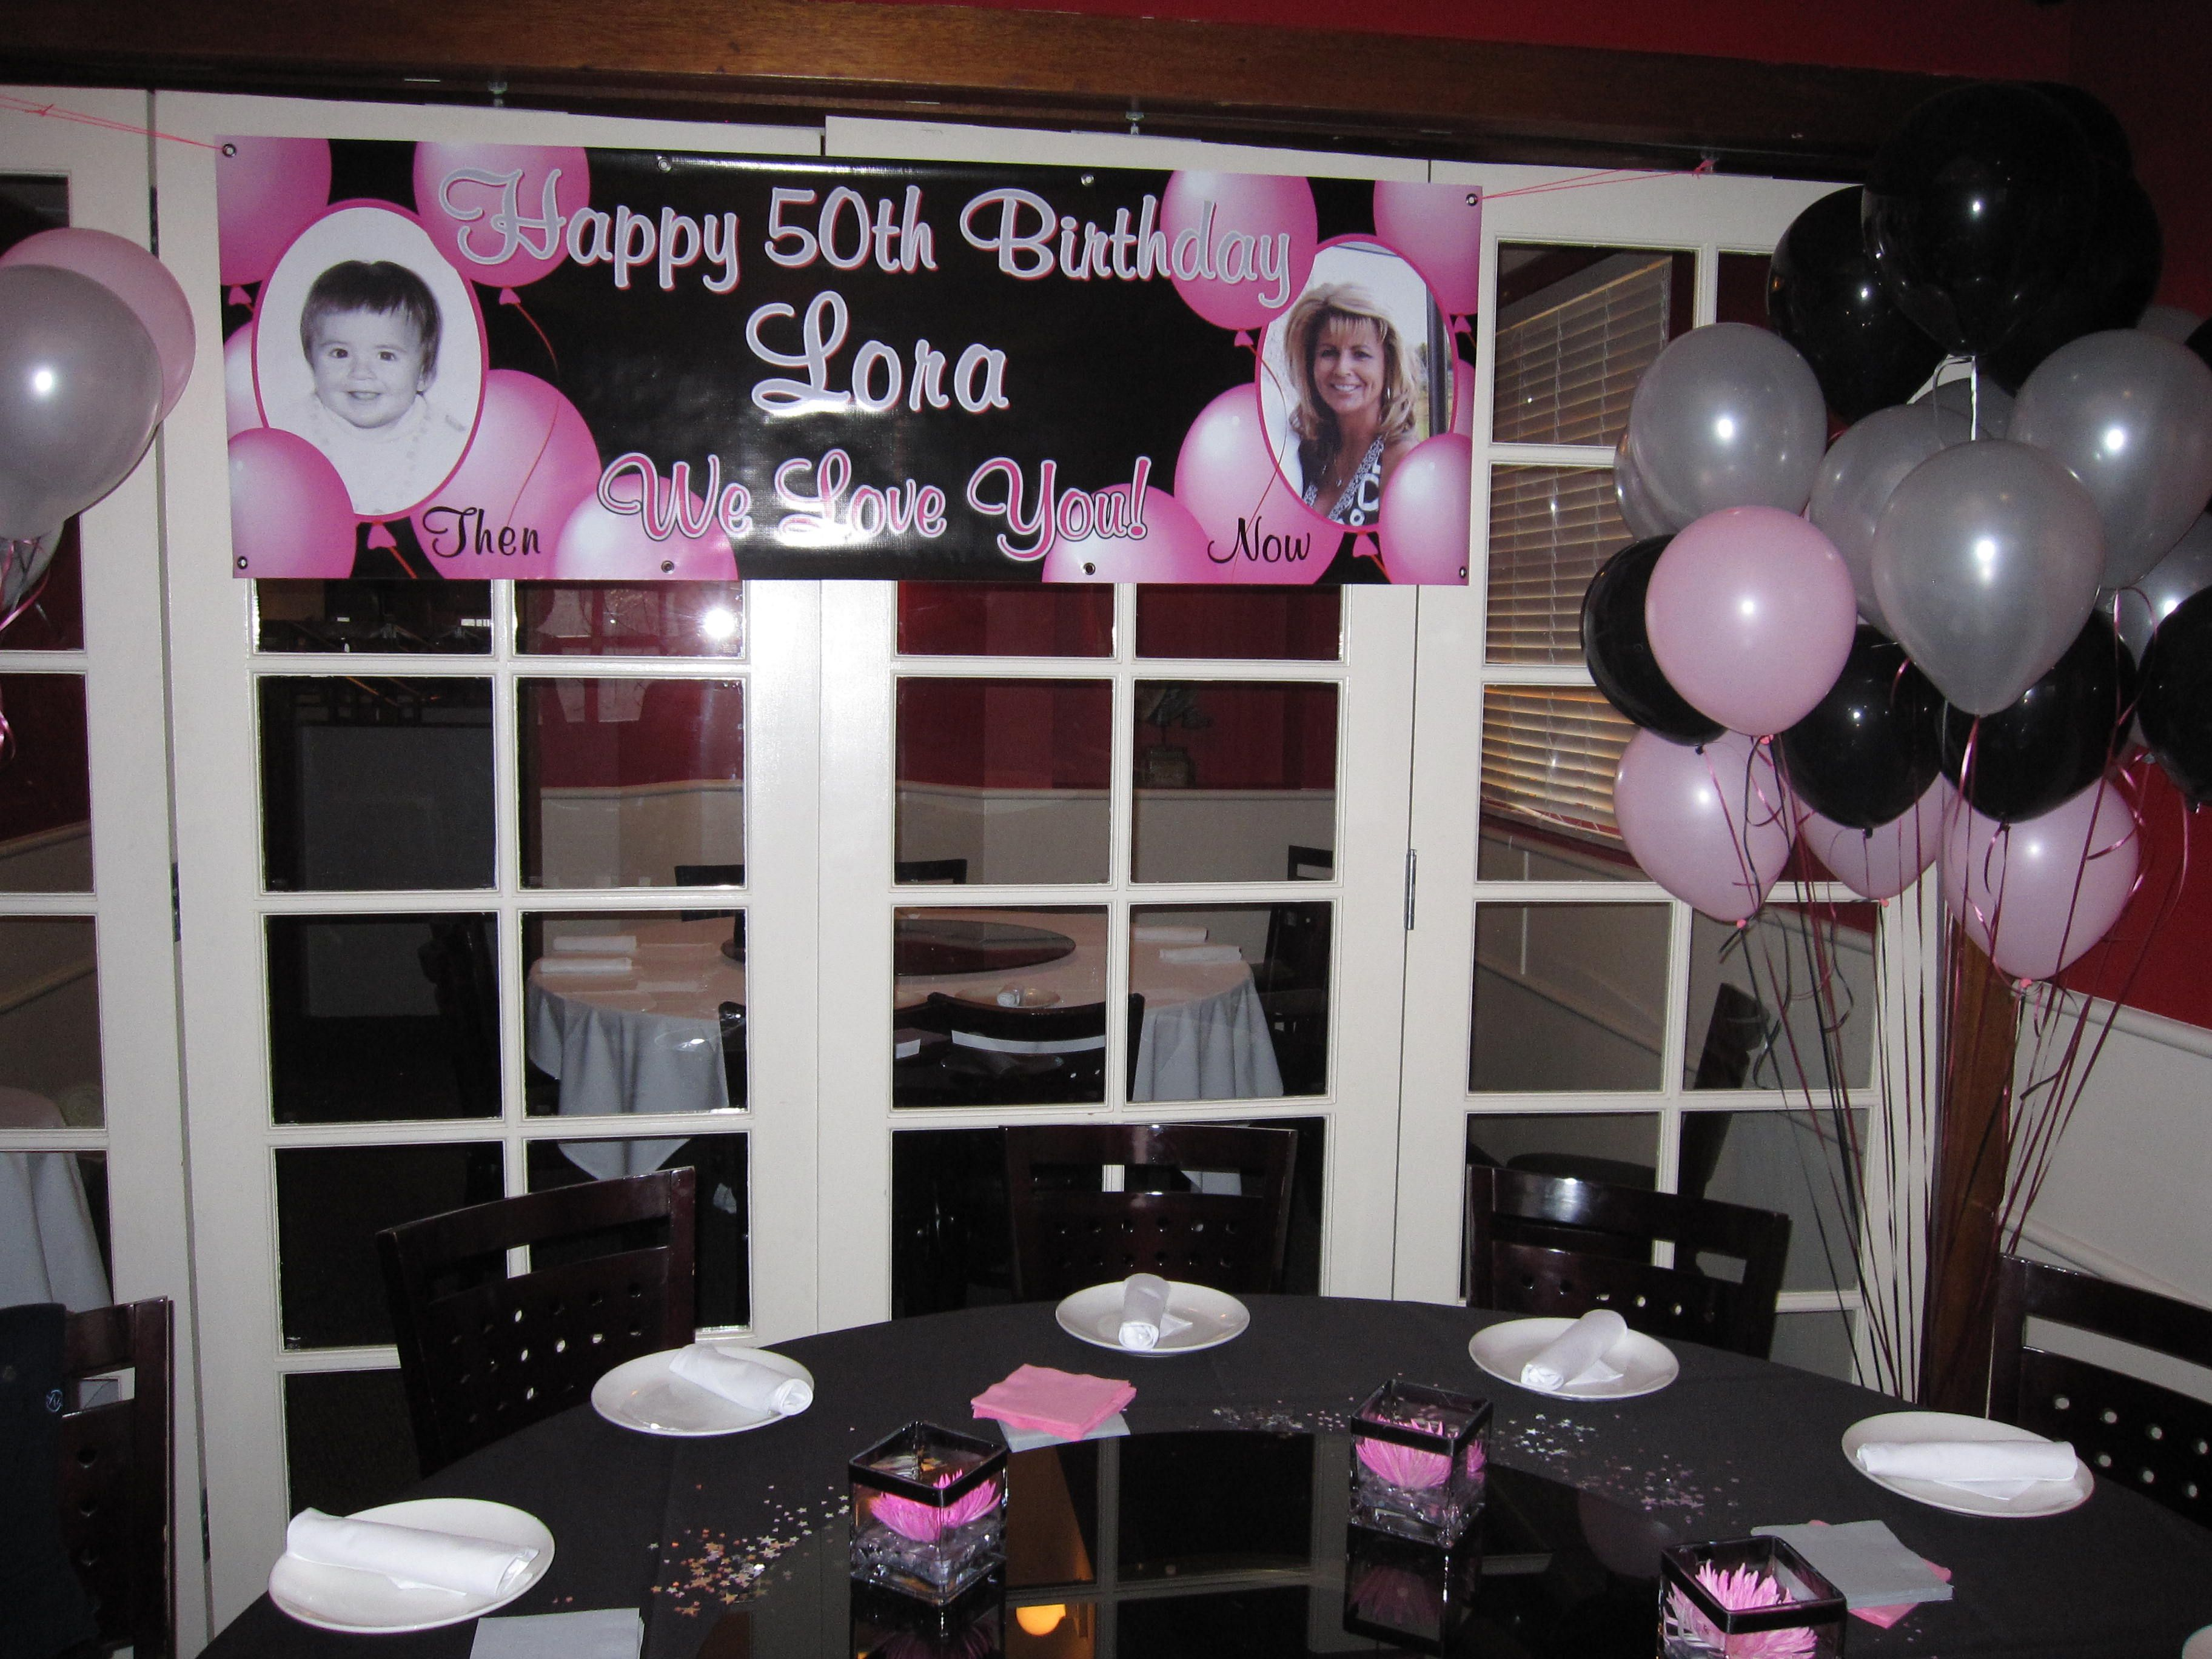 Birthday Party Decor Theme Pink Silver Black 50th Bday 50th